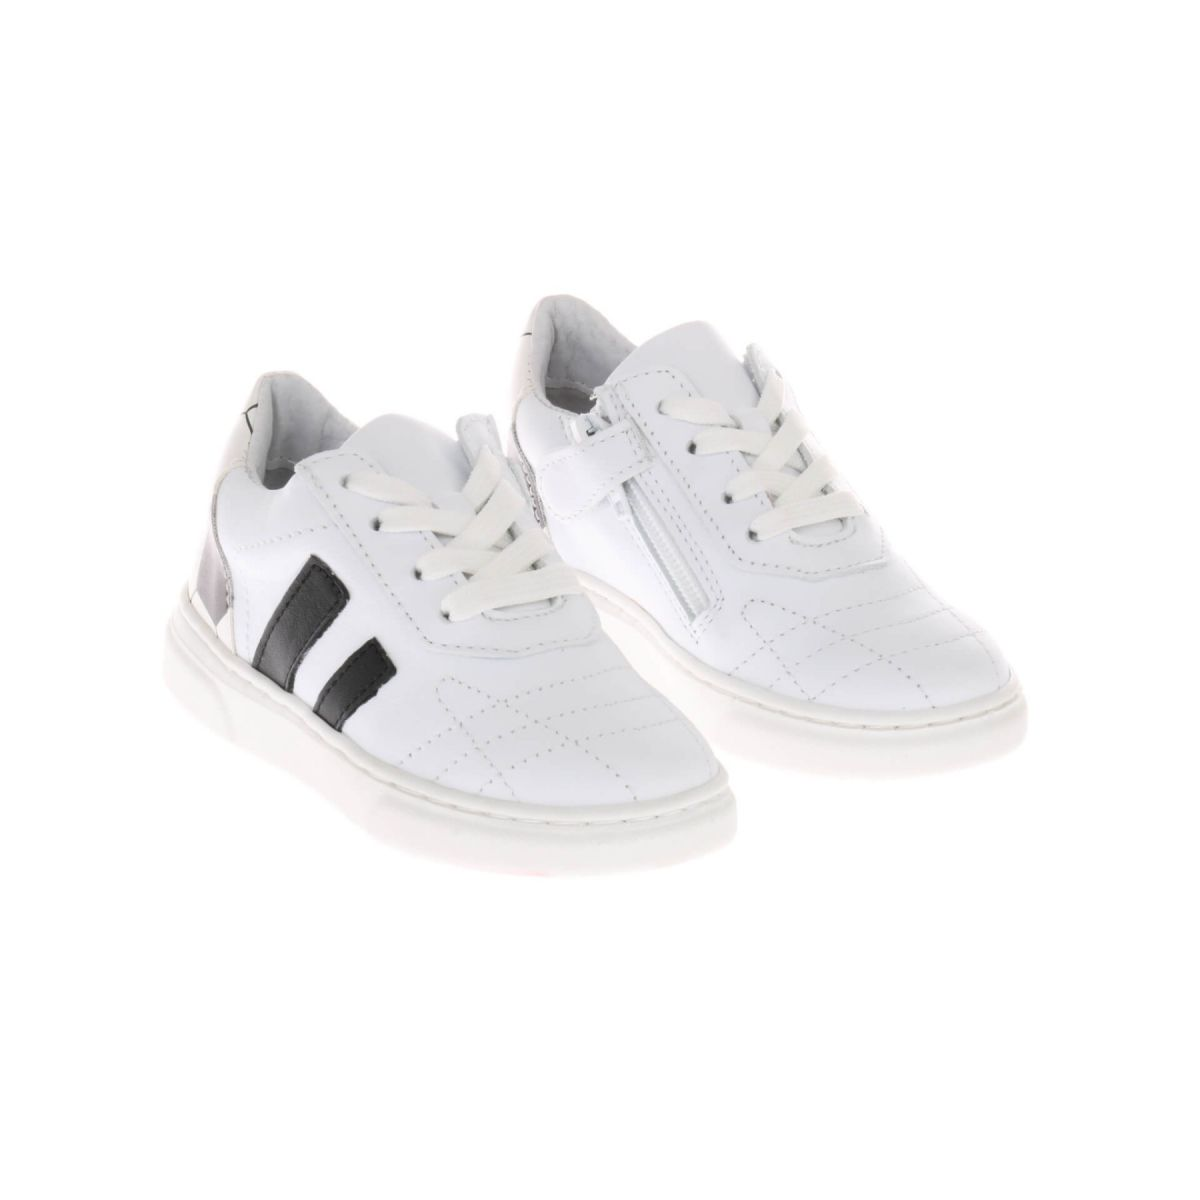 Pinocchio P1322 Voetbal Sneakers Wit